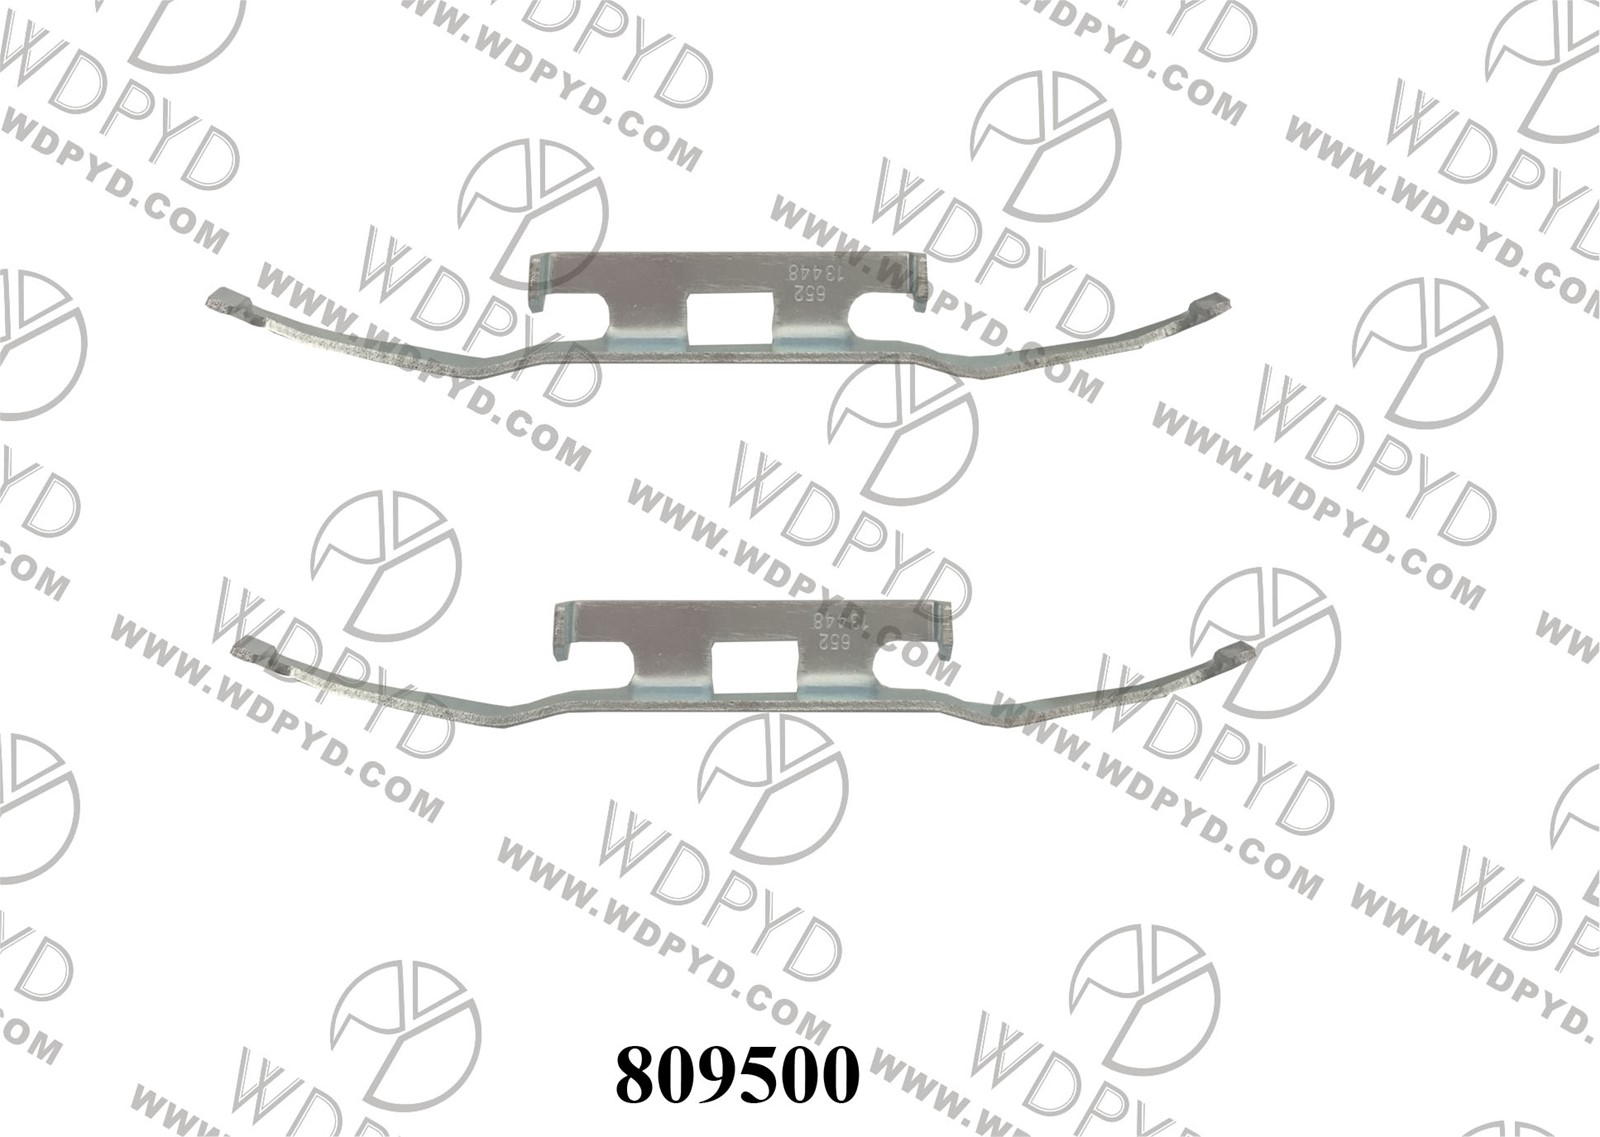 Wellde Dsic brake pad clip 809500 for REAR DODGE SPRINTER